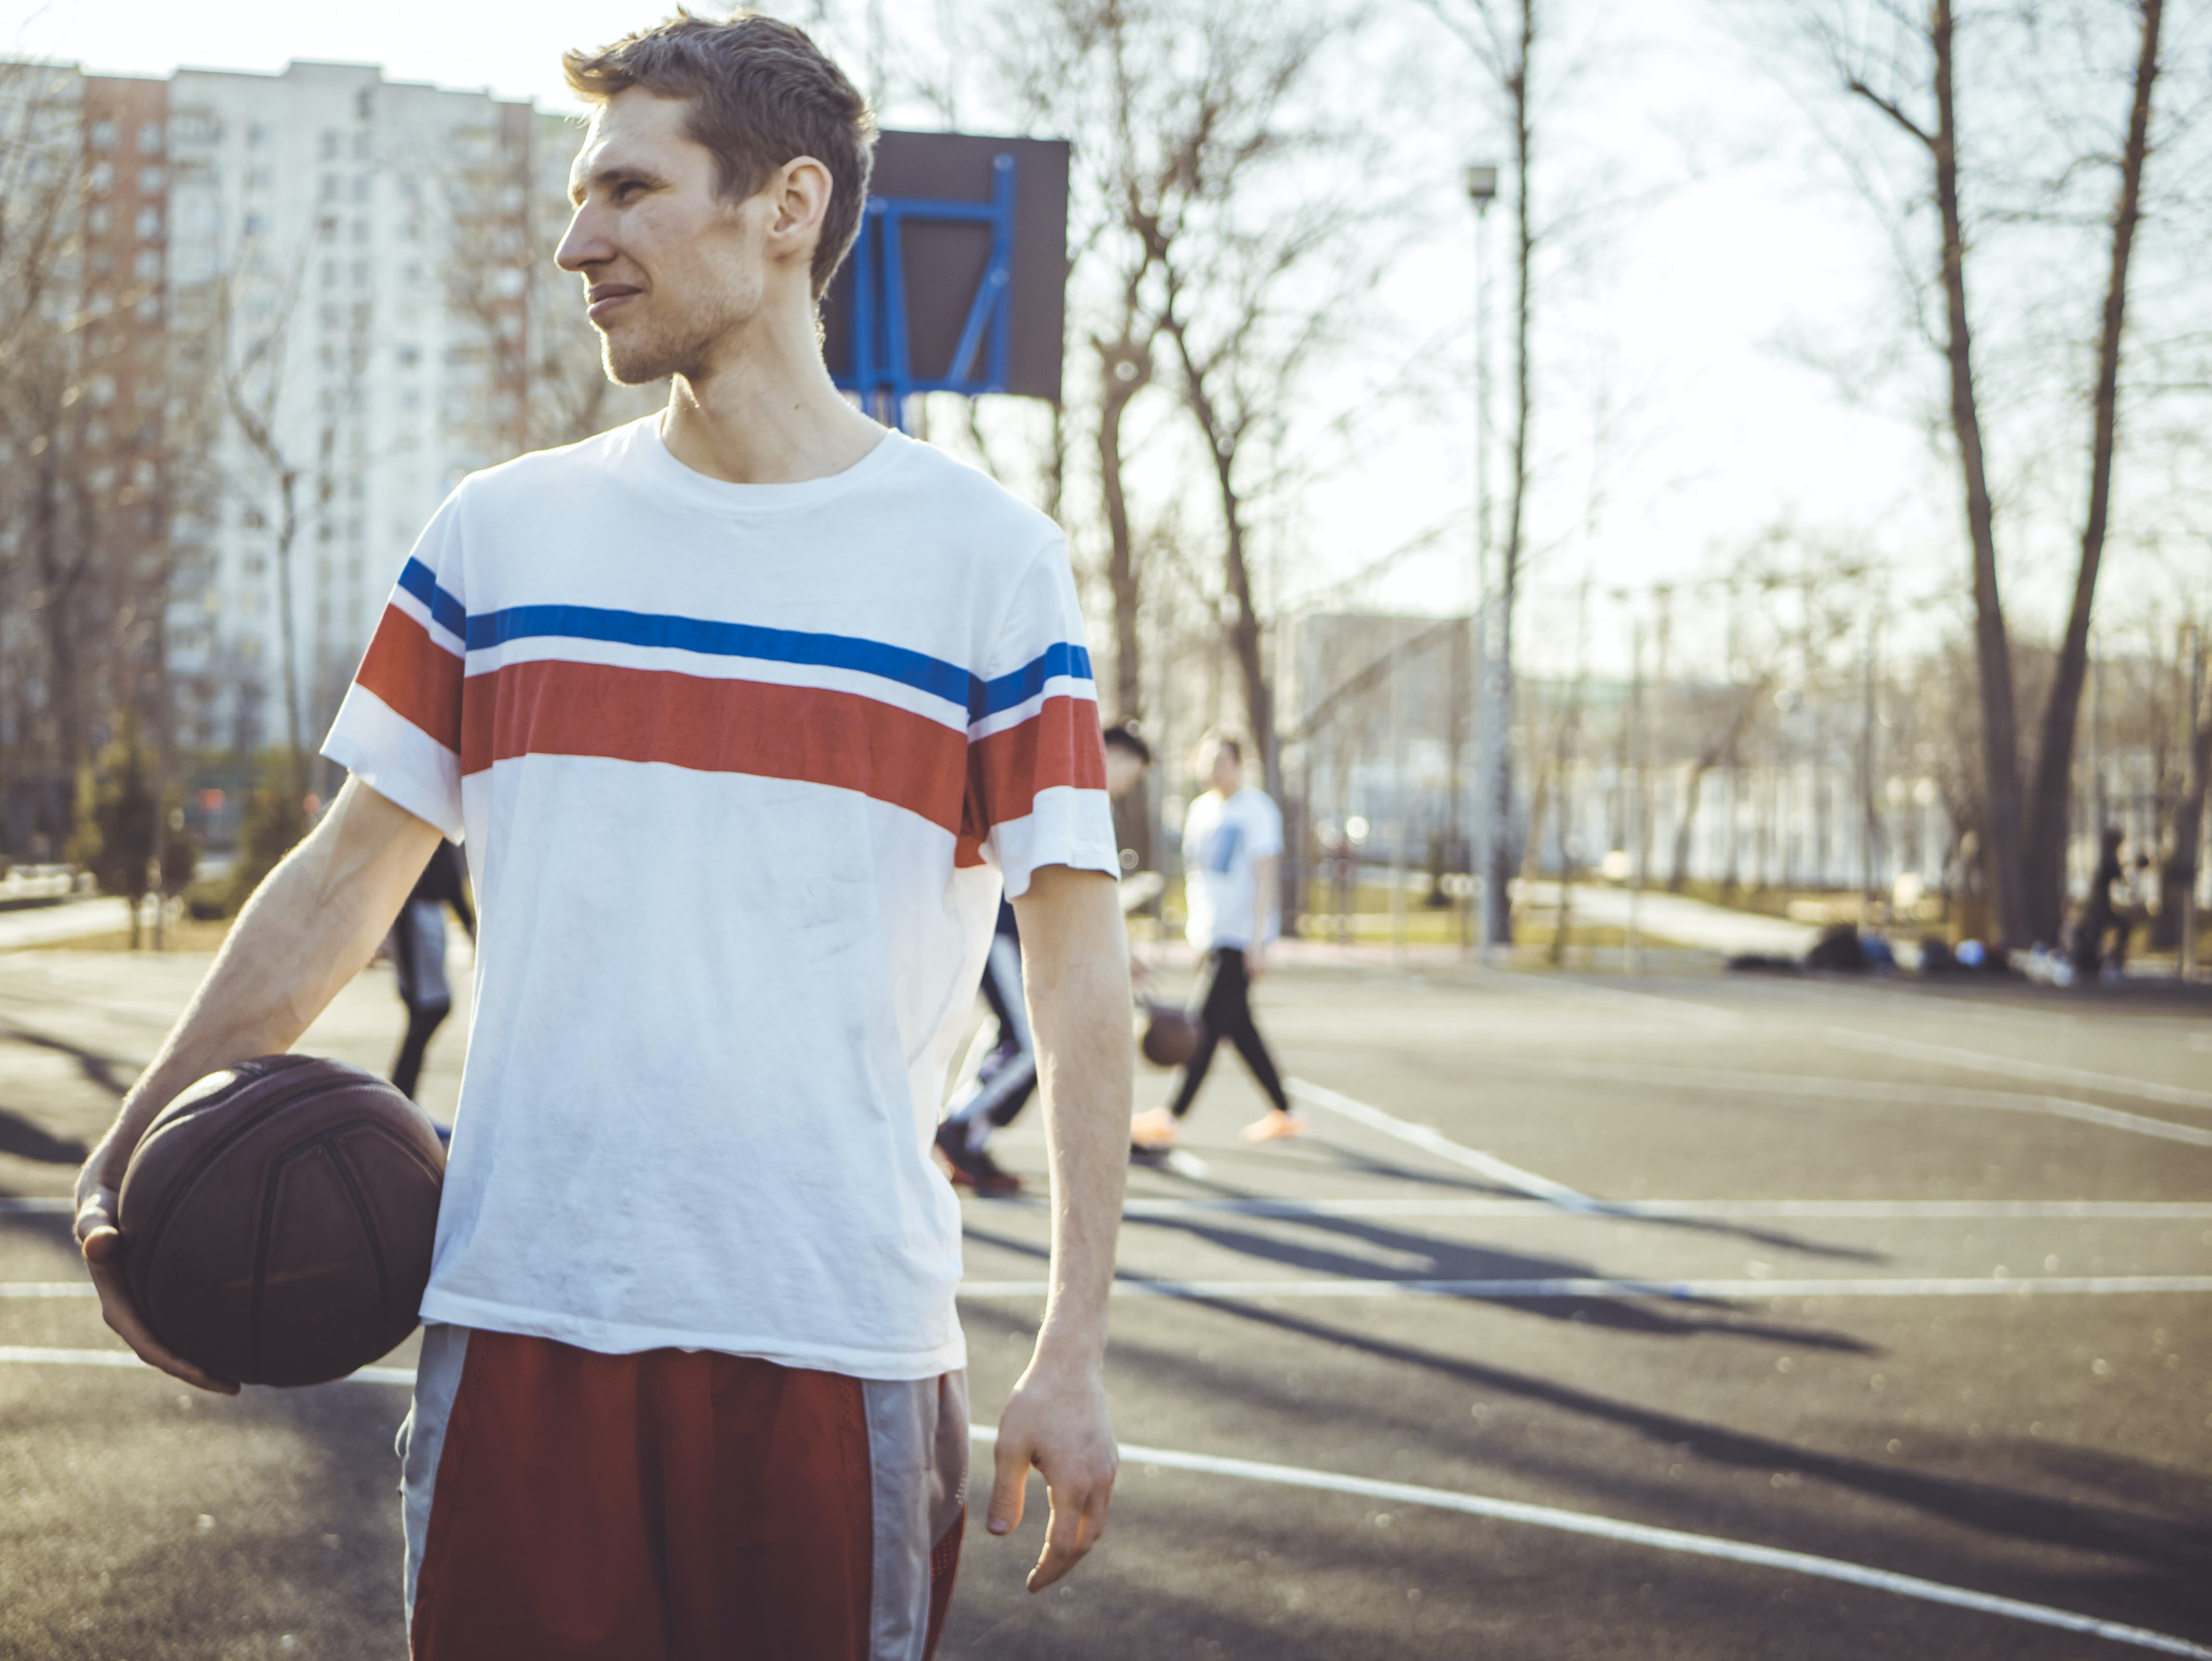 Man Wearing Shirt Holding Basketball in Court